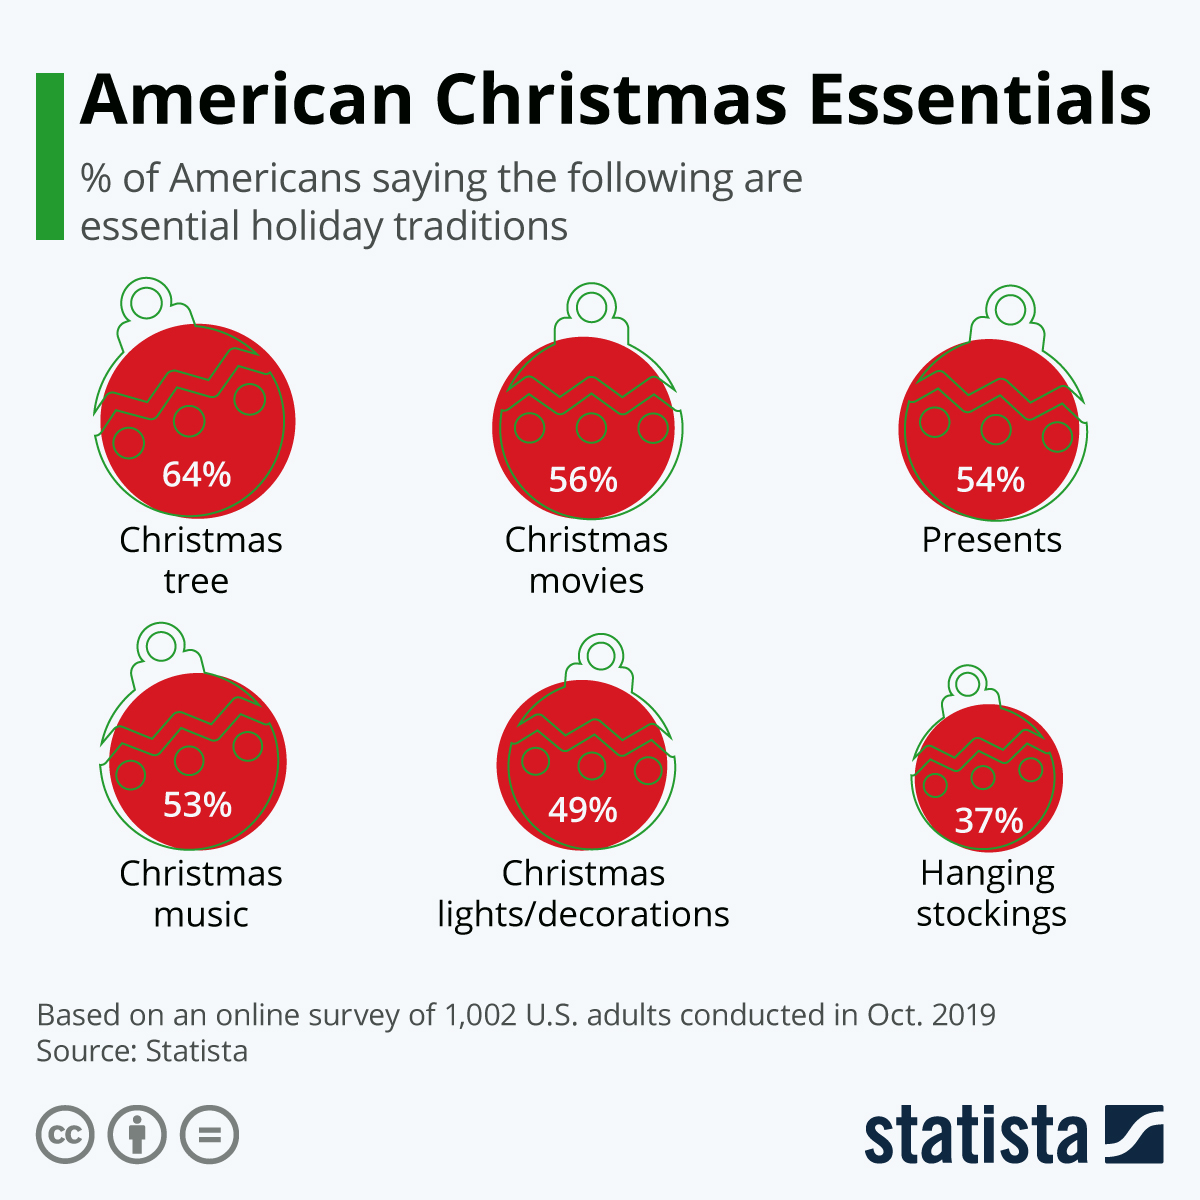 The Christmas traditions checklist